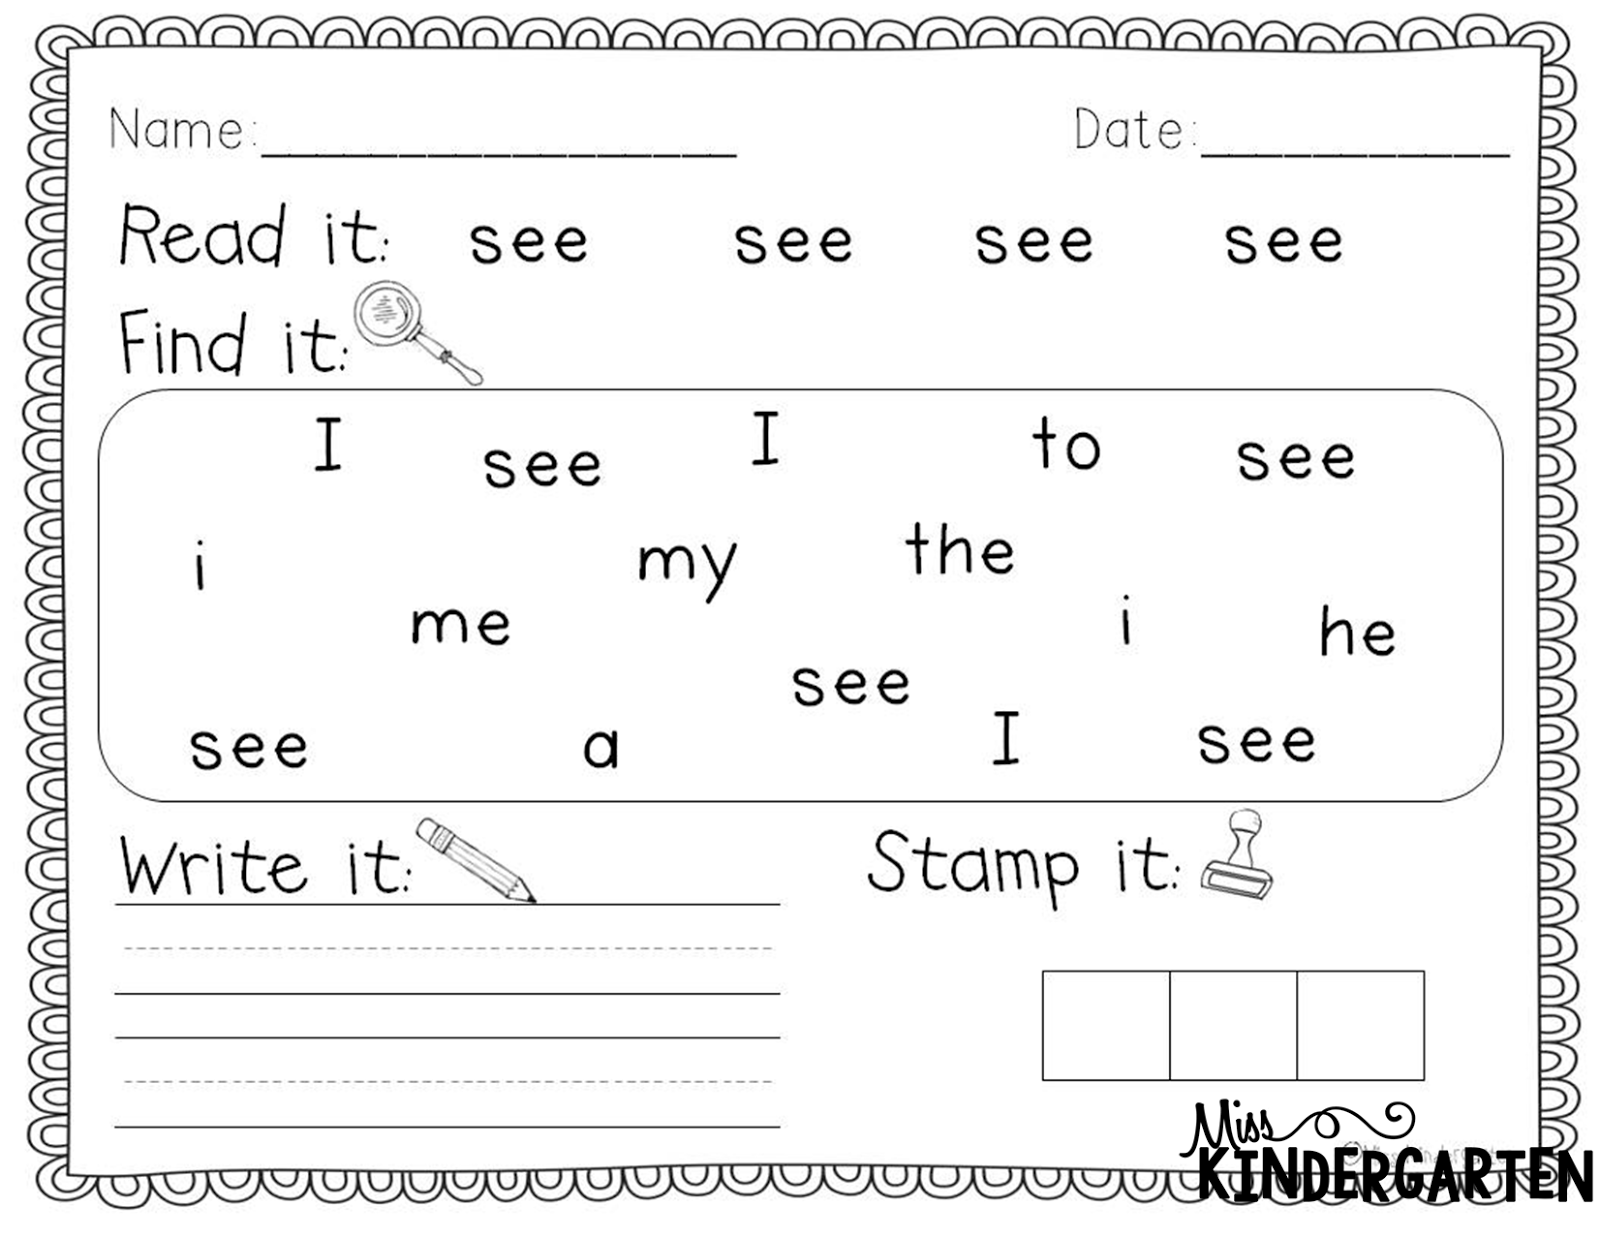 Worksheet Kindergarten Sight Word sight word practice miss kindergarten httpwww teacherspayteachers comproductsight word